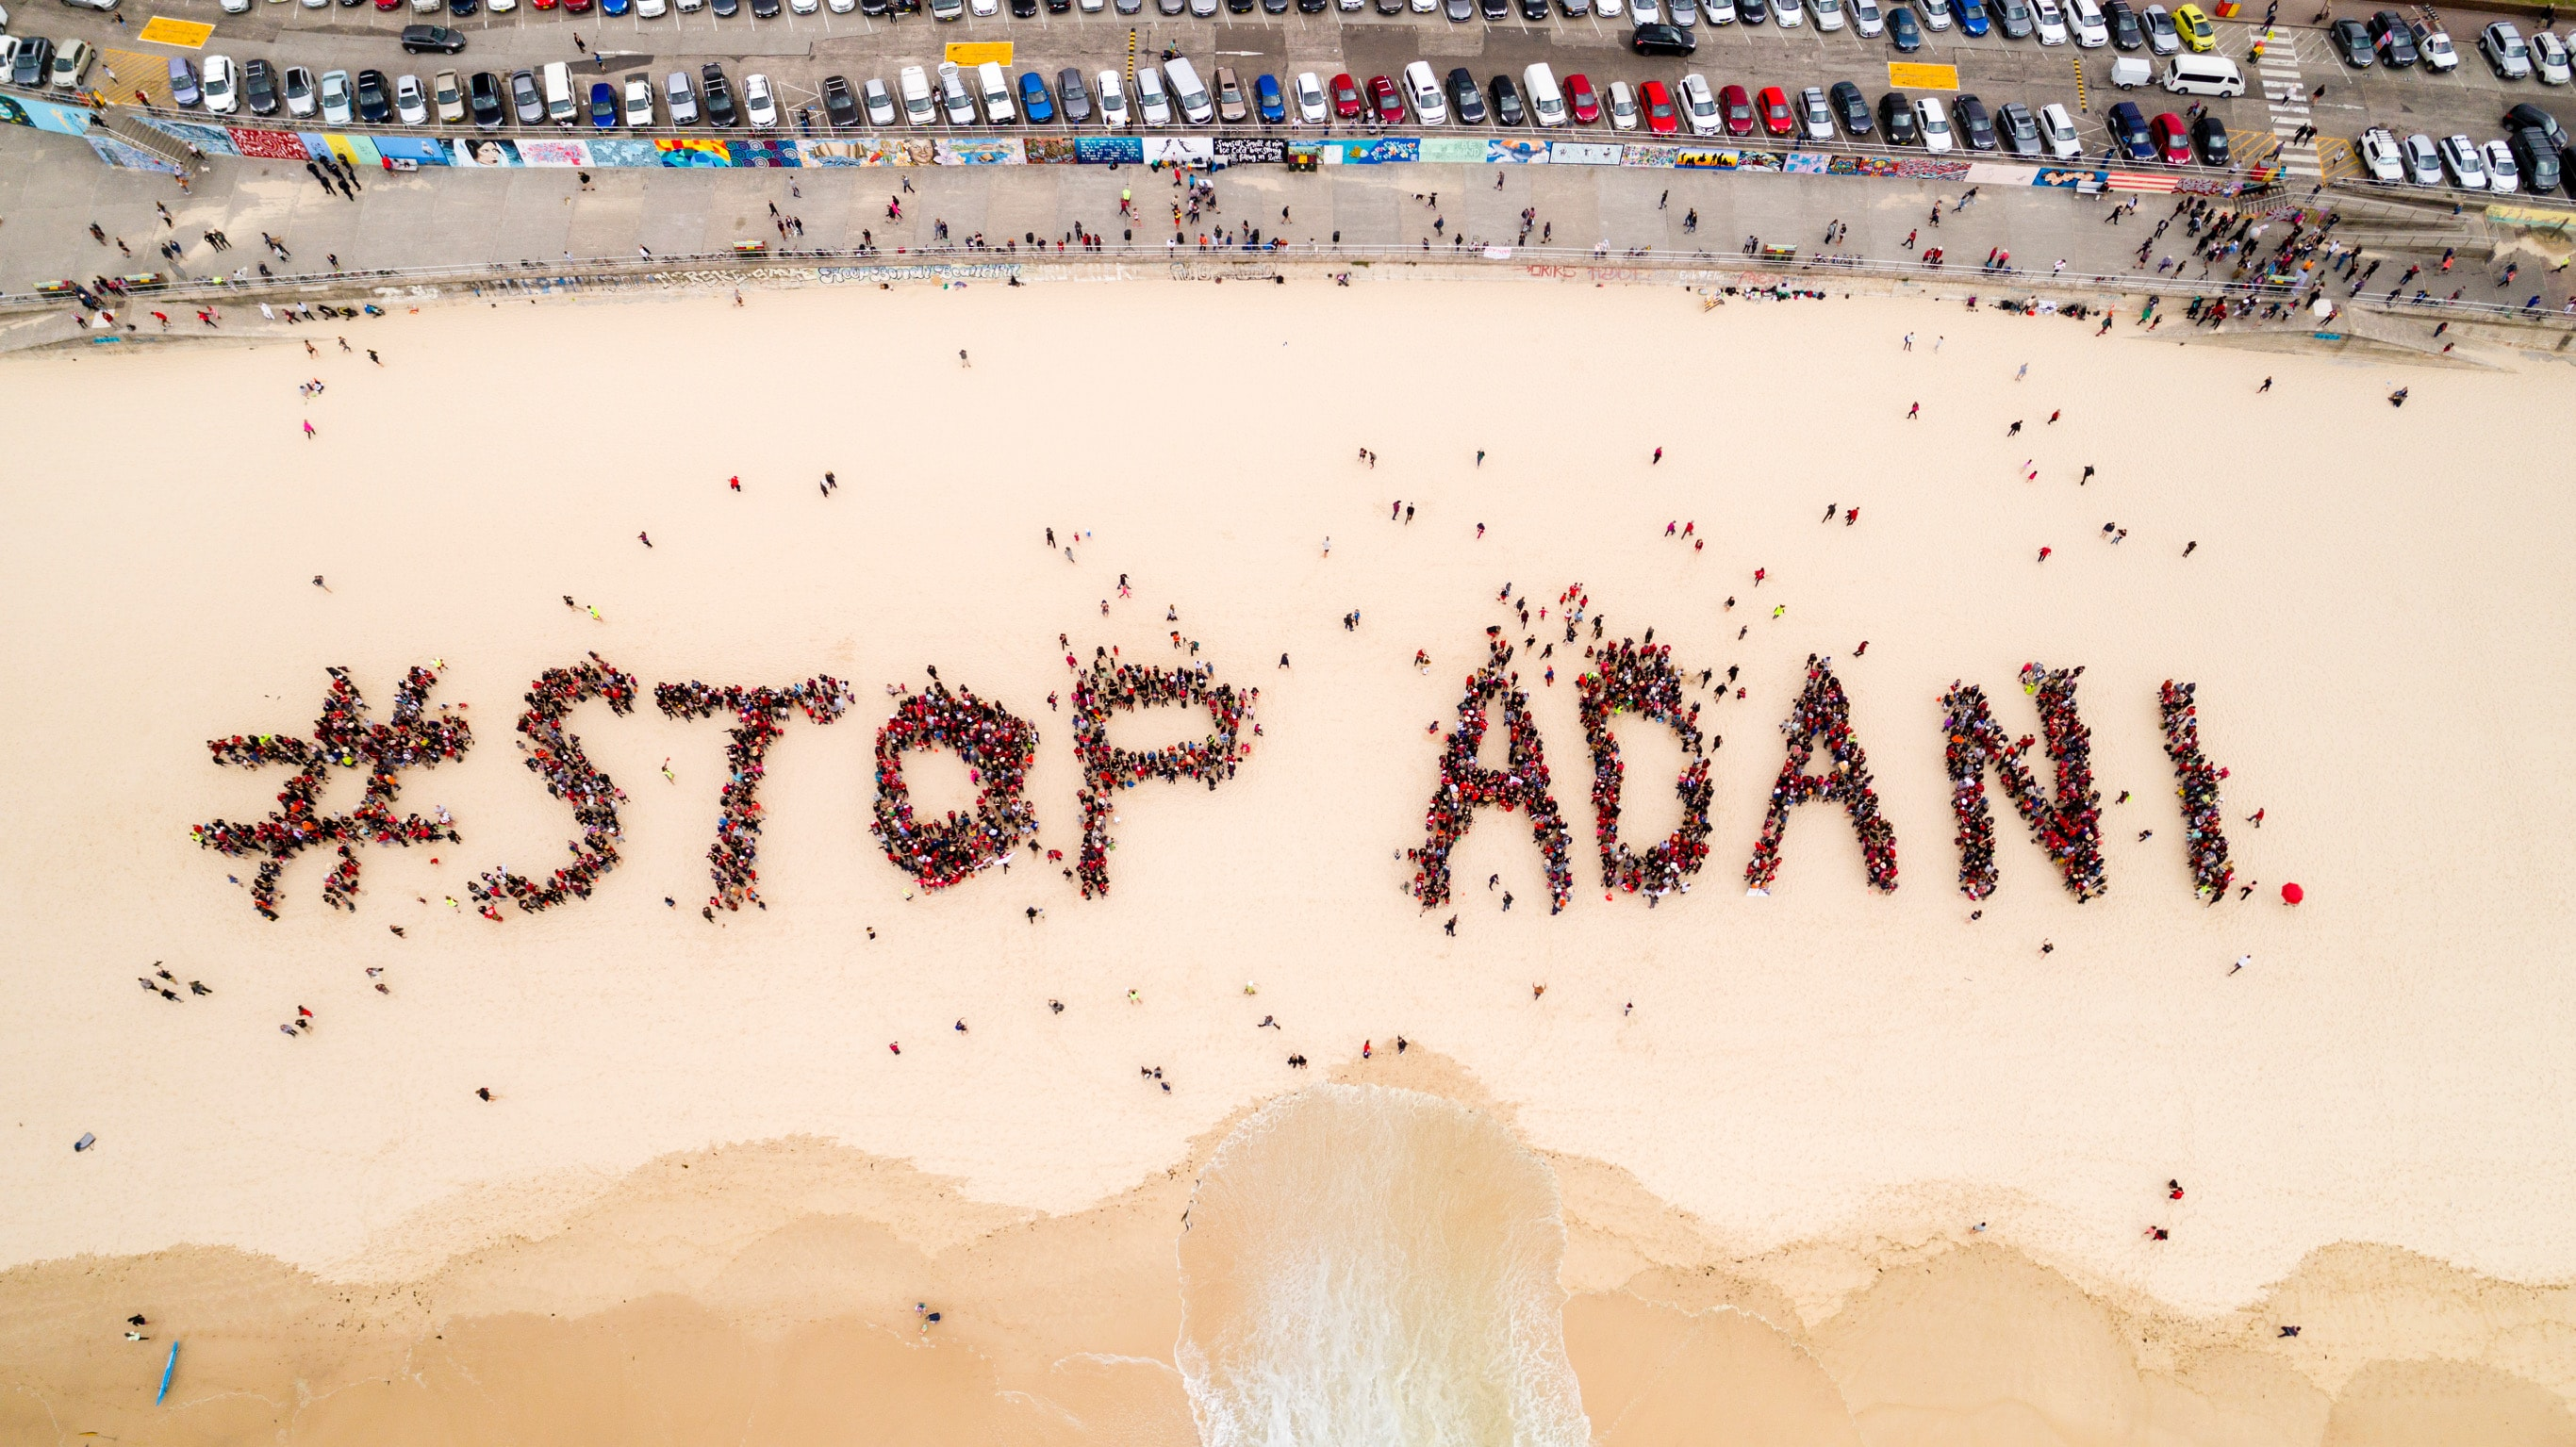 The human formation in Bondi beach in Sydney on October 7. Credit: StopAdaniAlliance.